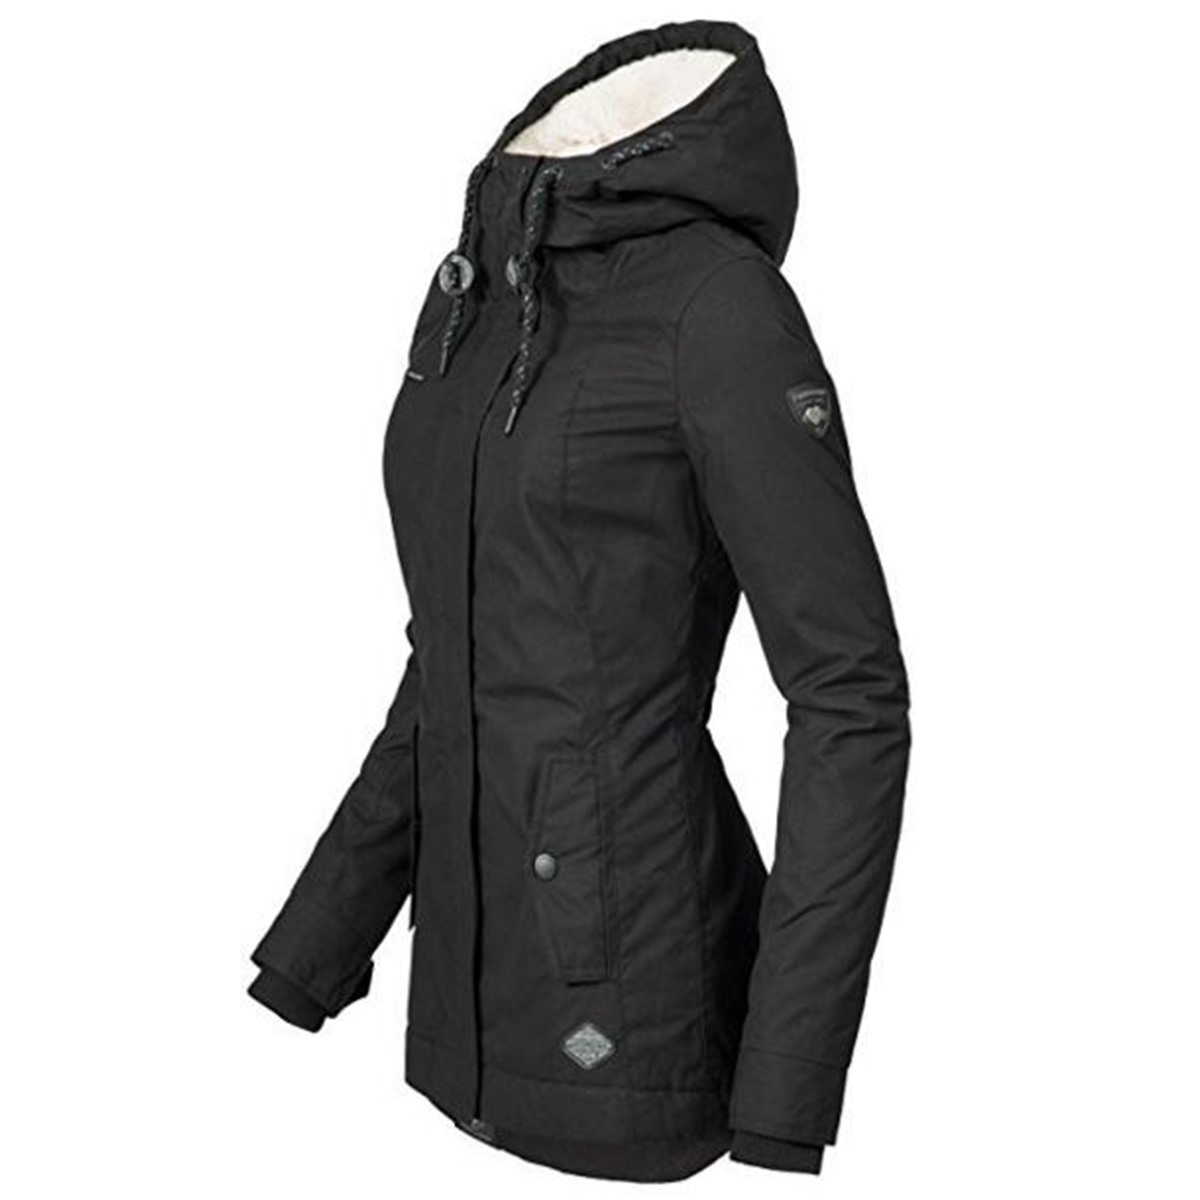 HTB1NDtBXffsK1RjSszgq6yXzpXaM Black Cotton Coats Women Casual Hooded Jacket Coat Fashion Simple High Street Slim 2019 Winter Warm Thicken Basic Tops Female